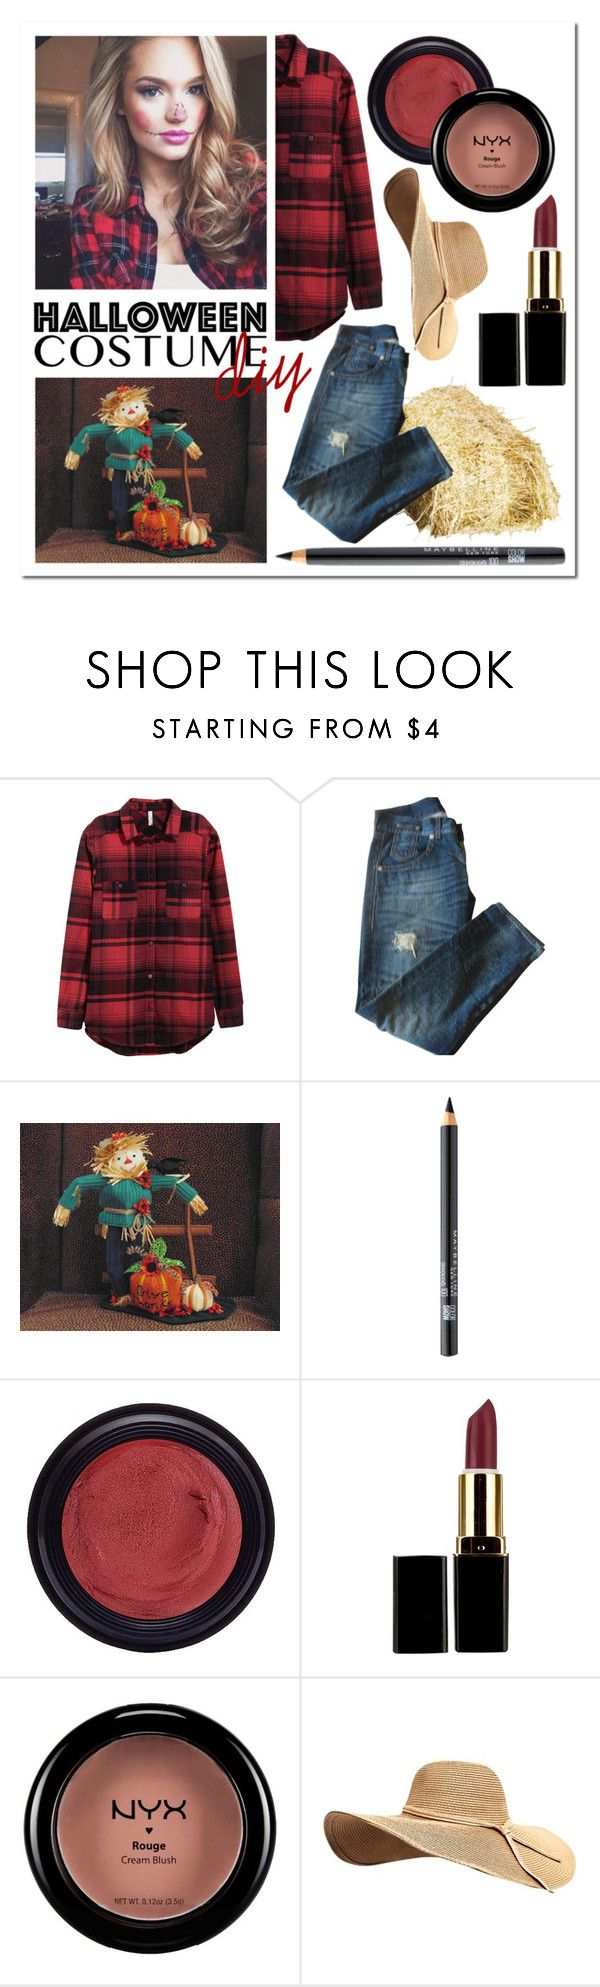 """""""DIY Halloween Costume: Scarecrow"""" by kimmyellipsis ❤ liked on Polyvore featuring GUESS, Maybelline, Real Purity, NYX, Halloween, makeup, plaidshirt, halloweencostume and DIYHalloween"""